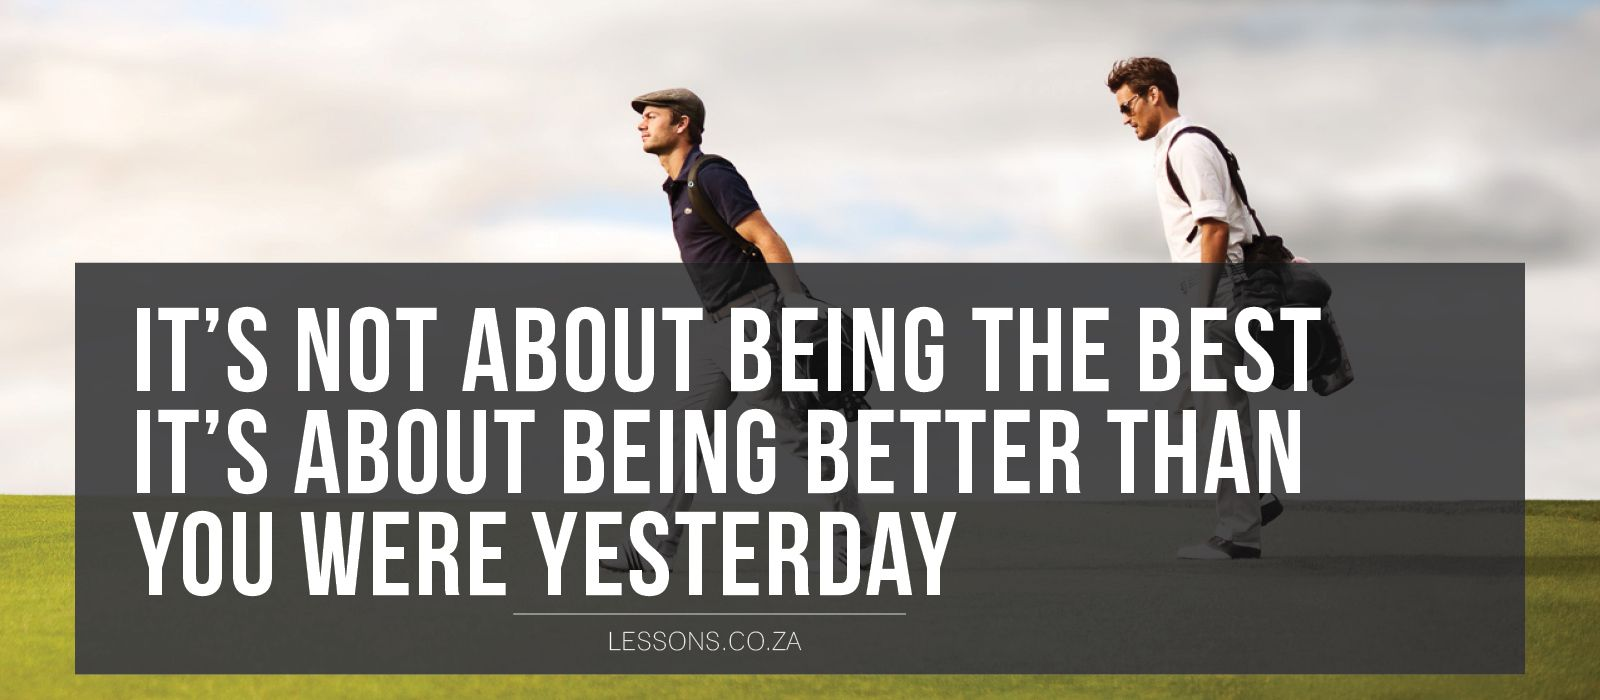 It's not about being the best, it's about being better than you were yesterday#liveandlearn #lessons #golf #golfcourse #sports #success